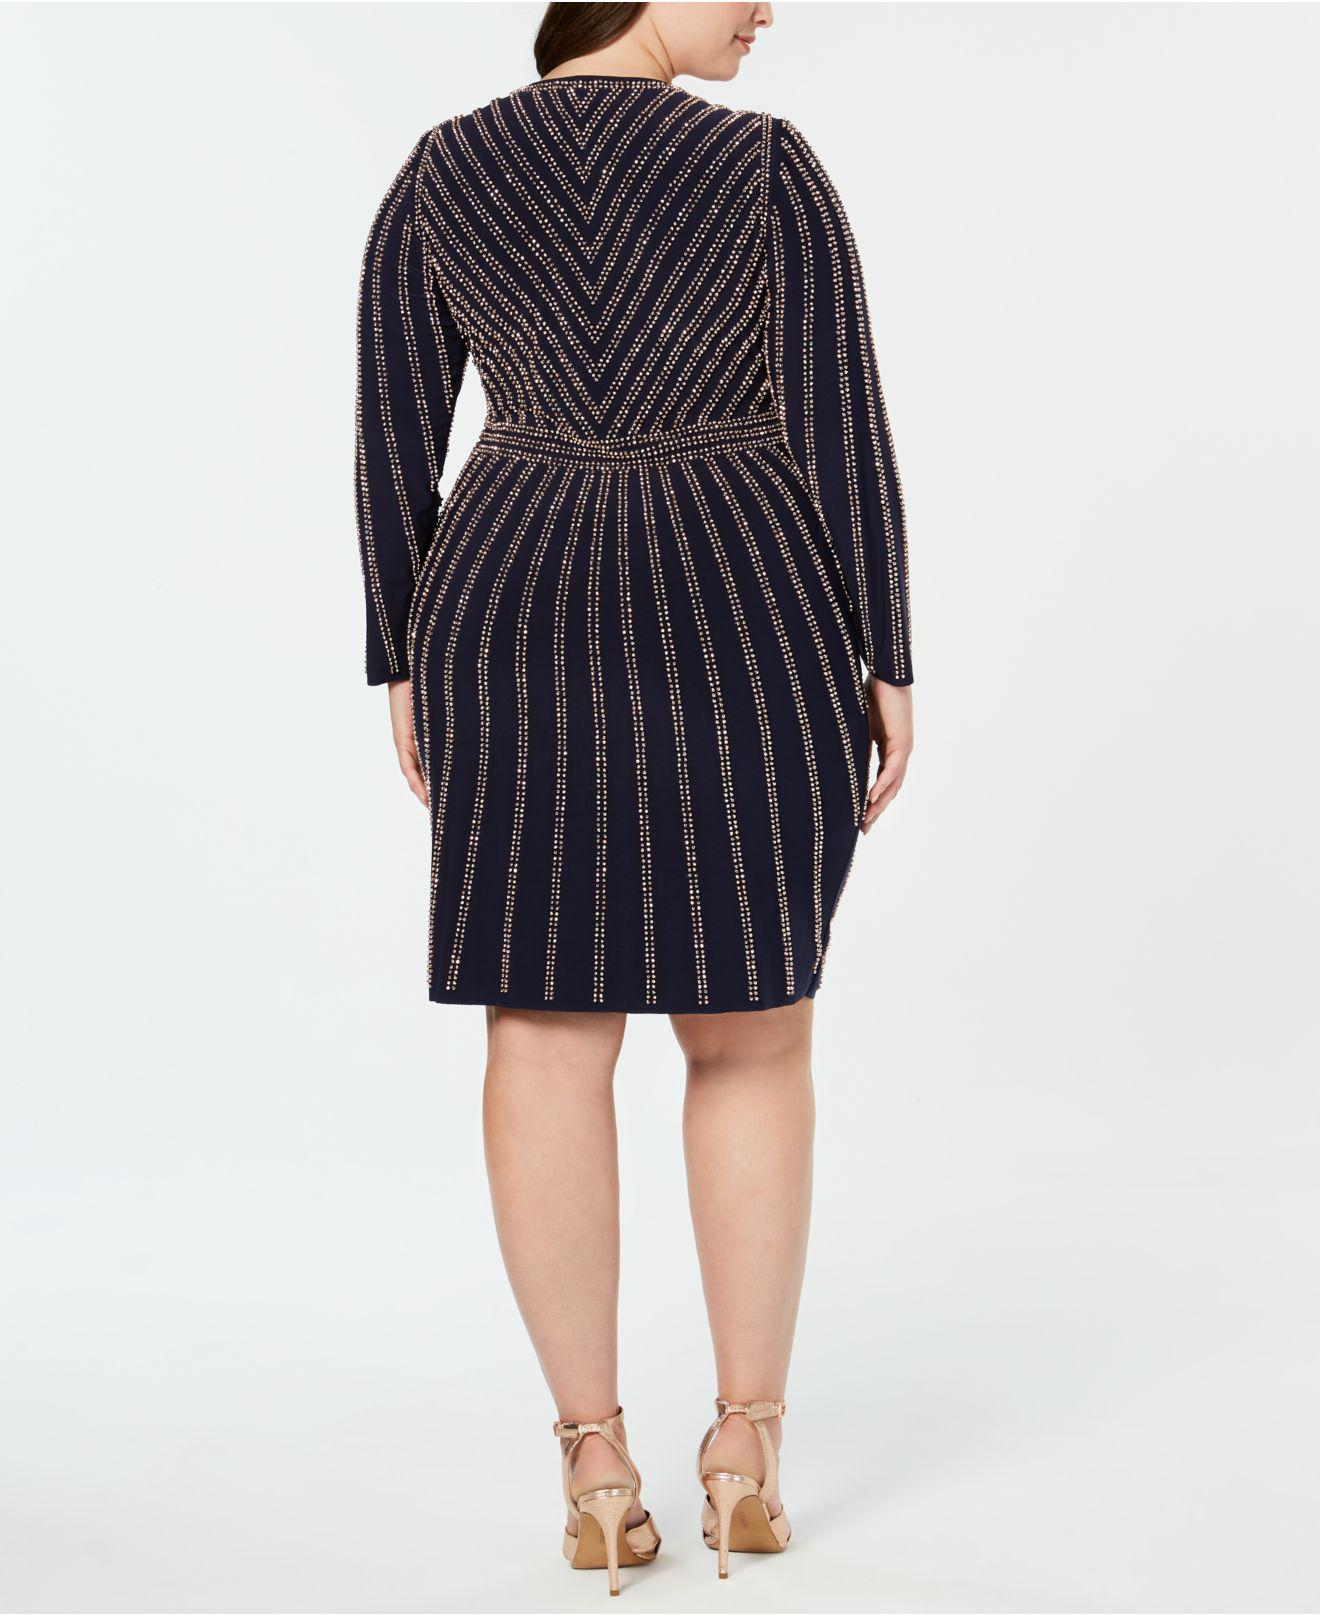 Xscape Plus Size Long-sleeve Embellished Bodycon Dress in Blue - Lyst